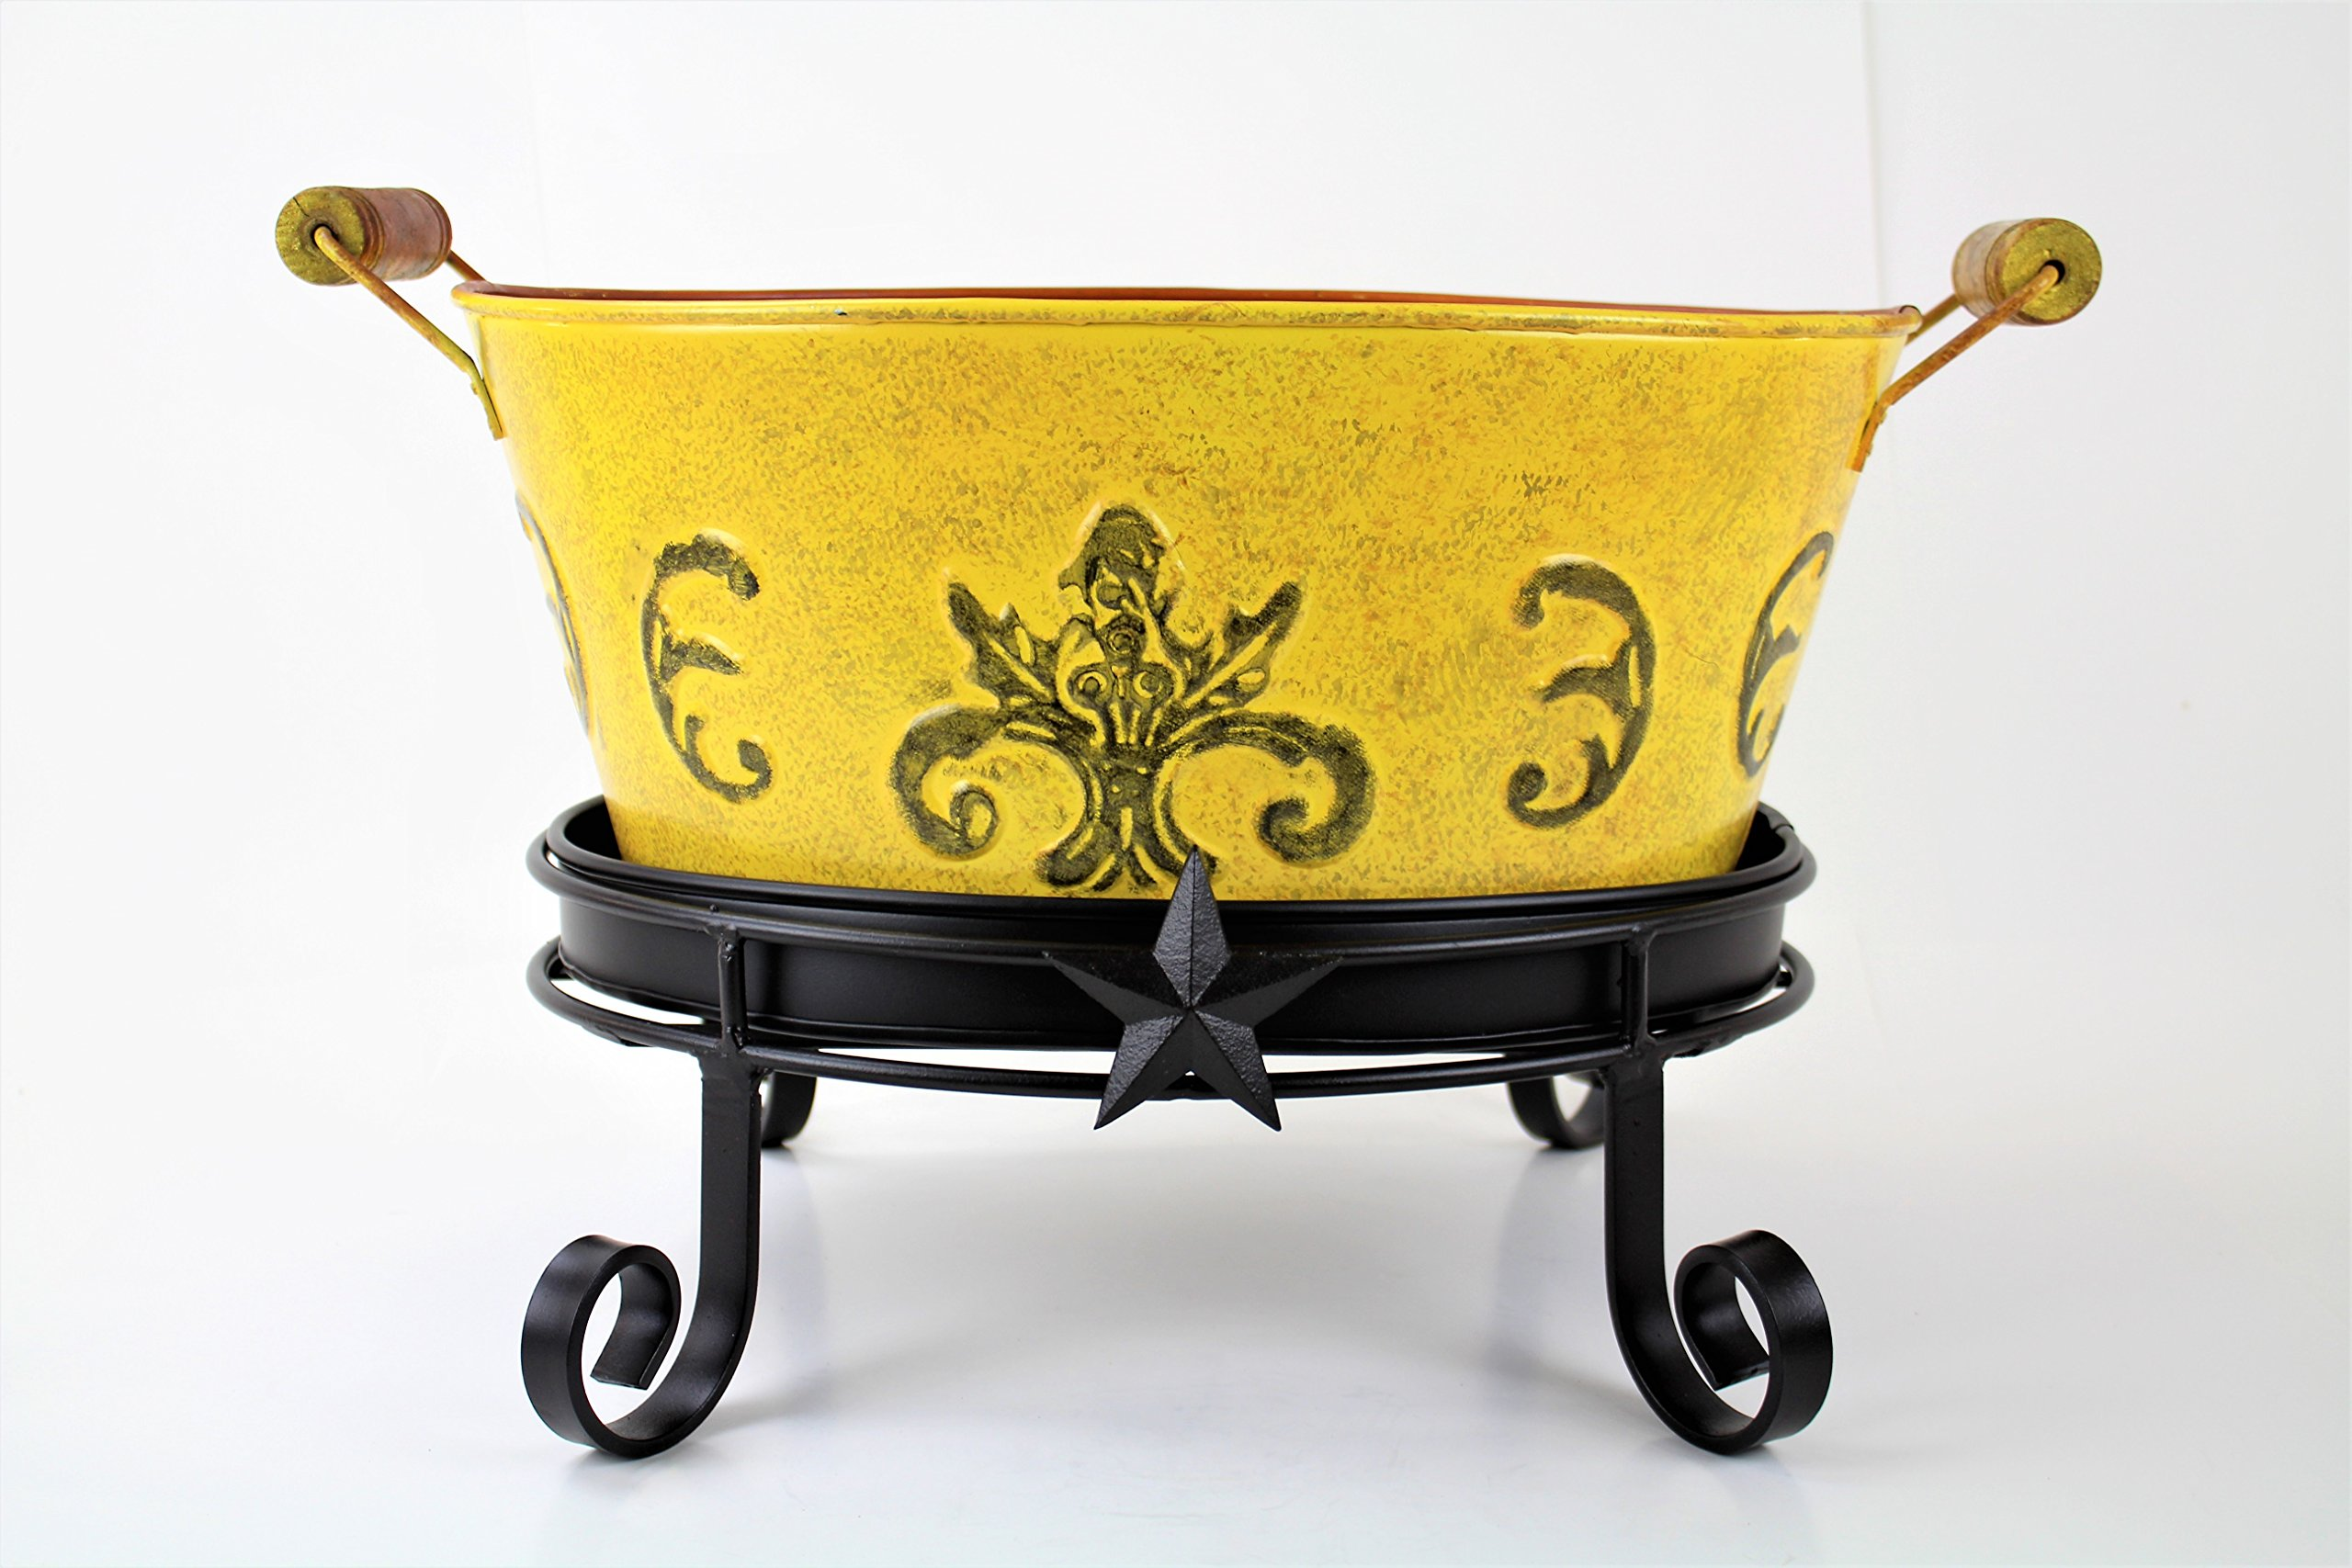 YELLOW OVAL BUCKET W/ STAR COPPER TABLE STAND AND DRIP TRAY